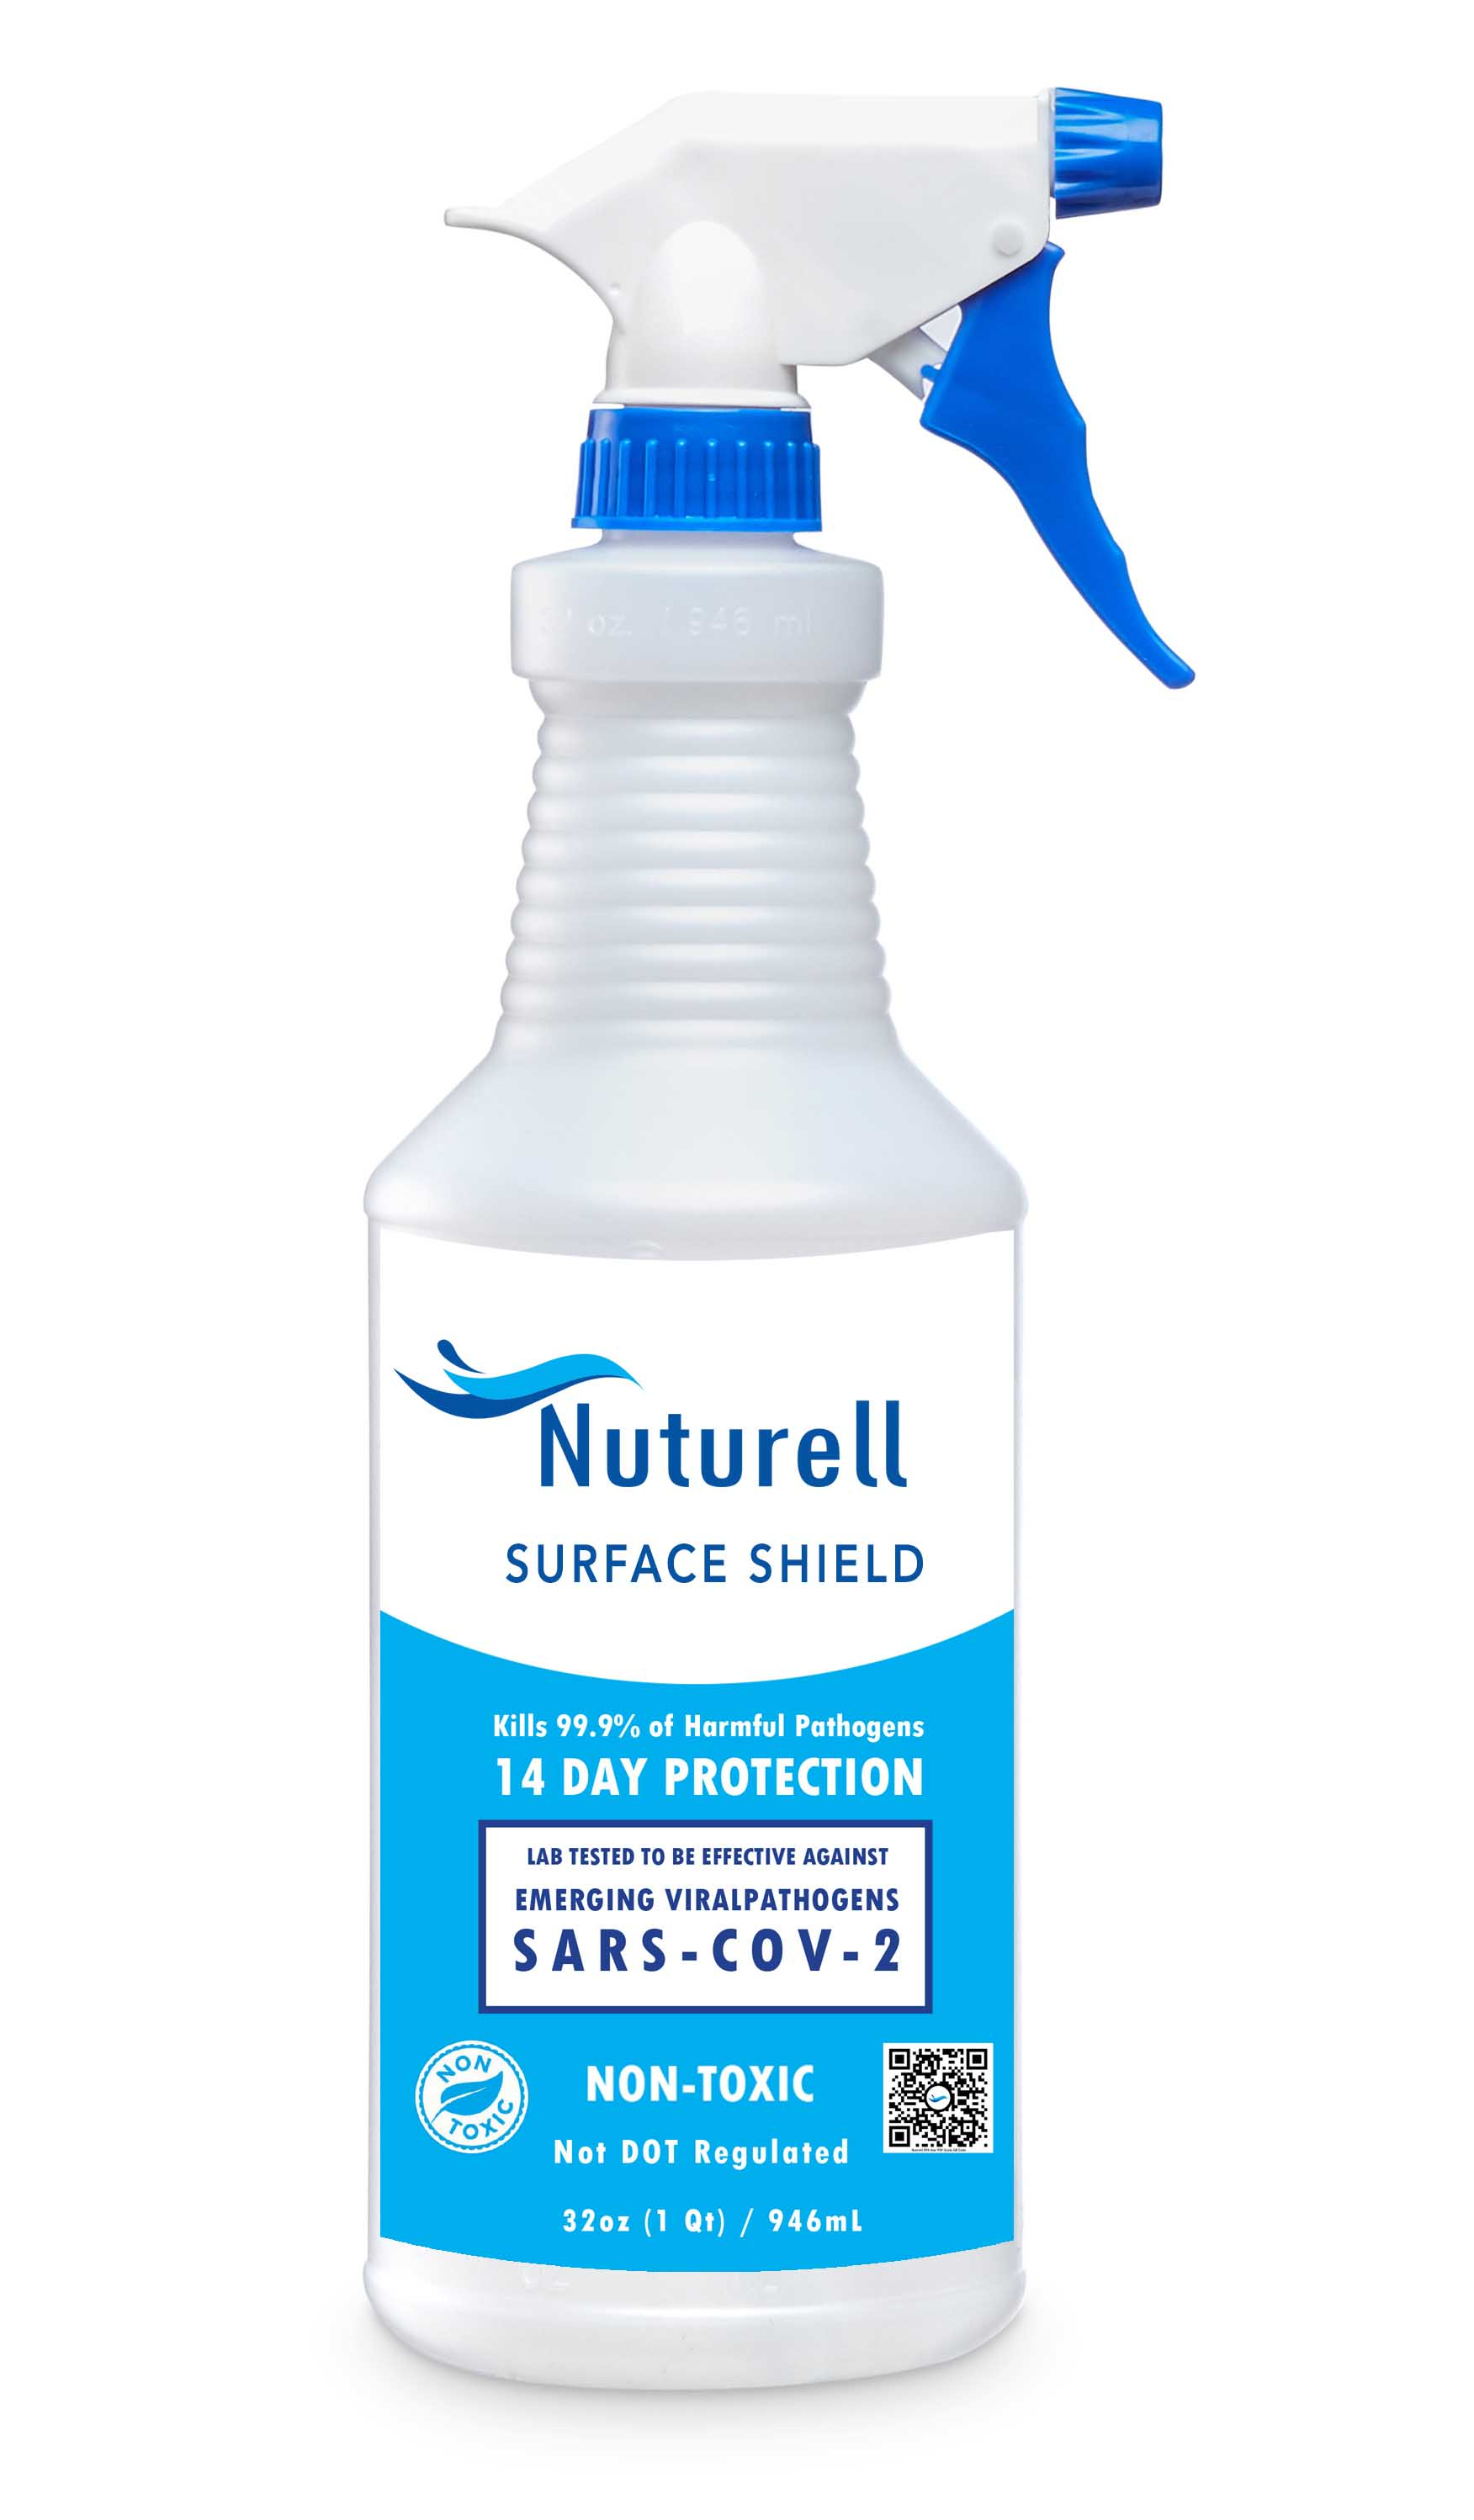 Nuturell Bottle